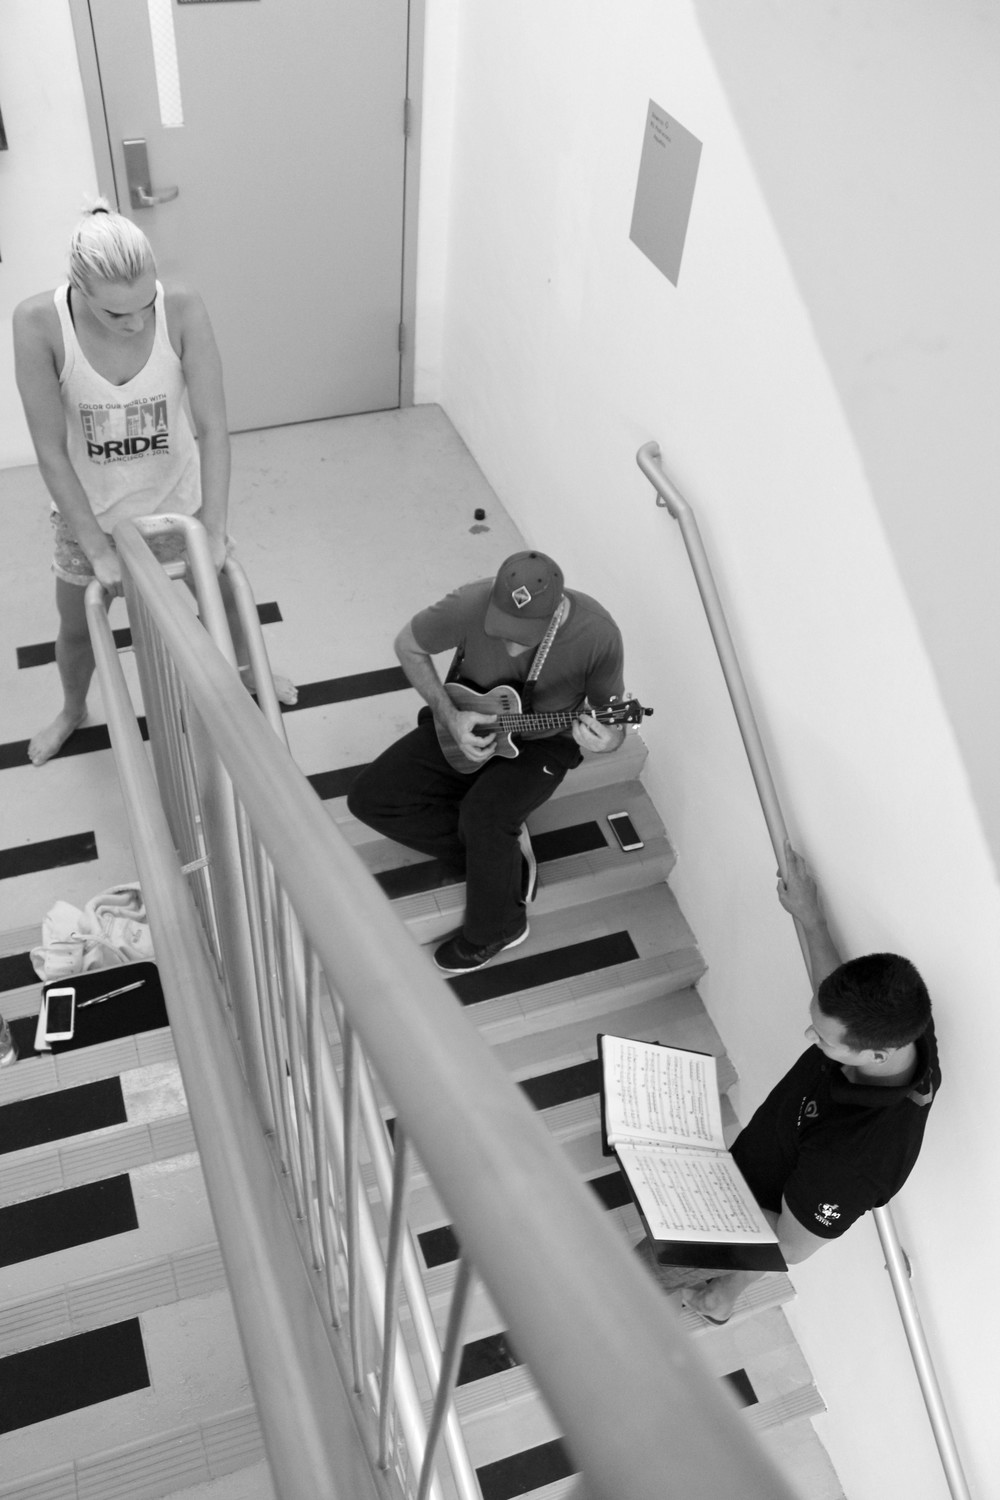 Stairwell Singing 21 AUG 4.JPG